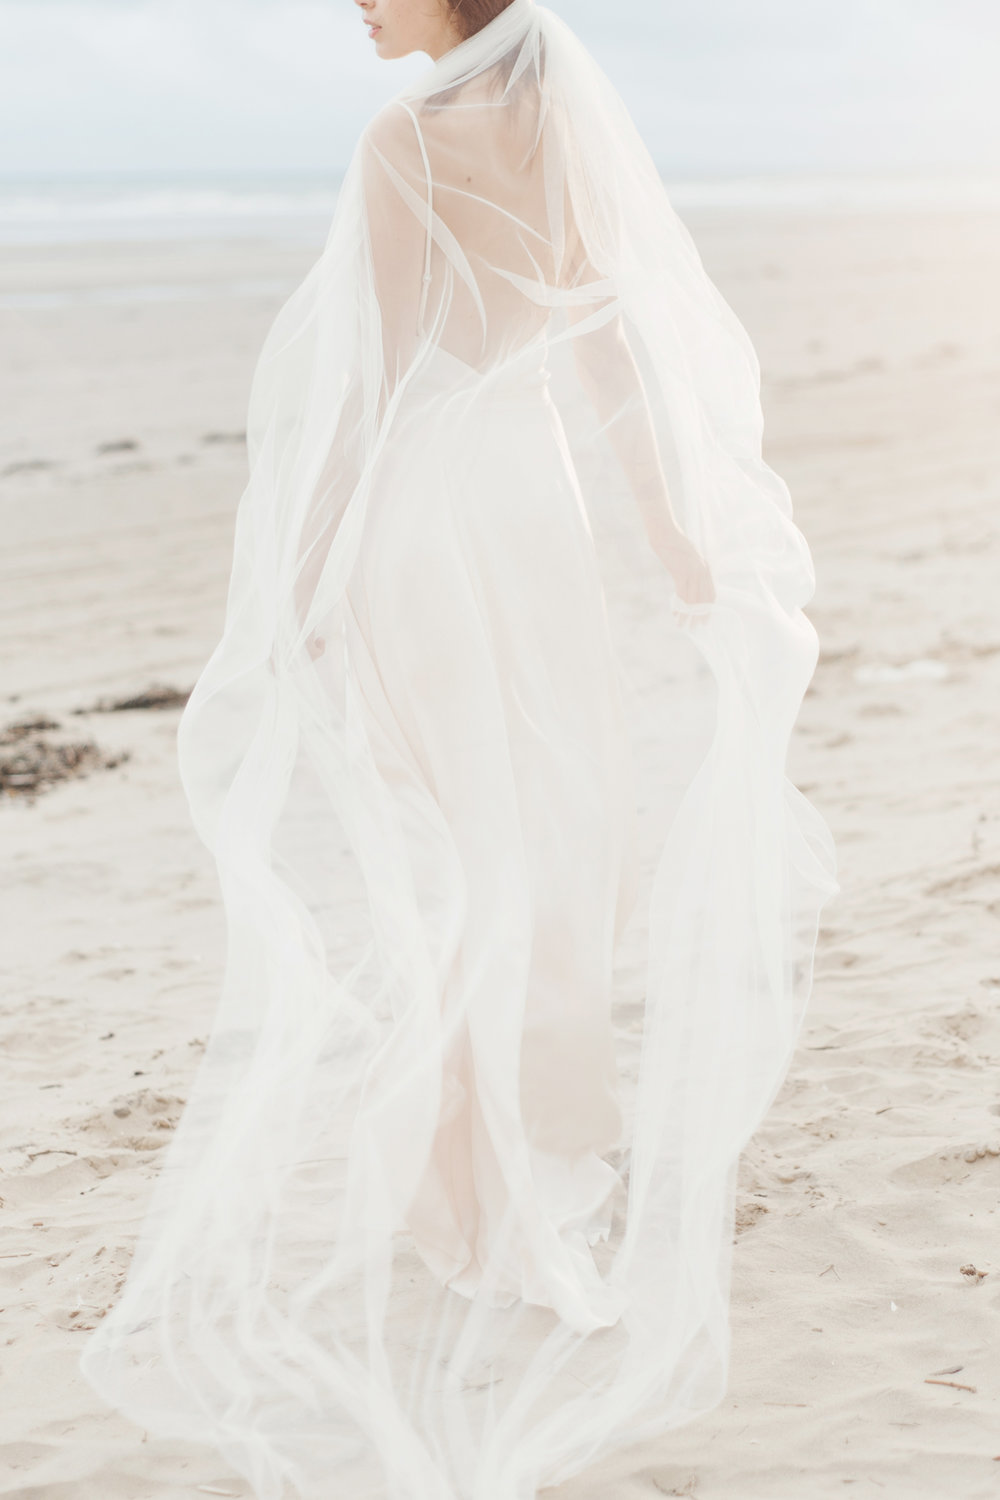 Kate-Beaumont-Wedding-Dresses-Formby-Beach-Emma-Pilkington-46.jpg